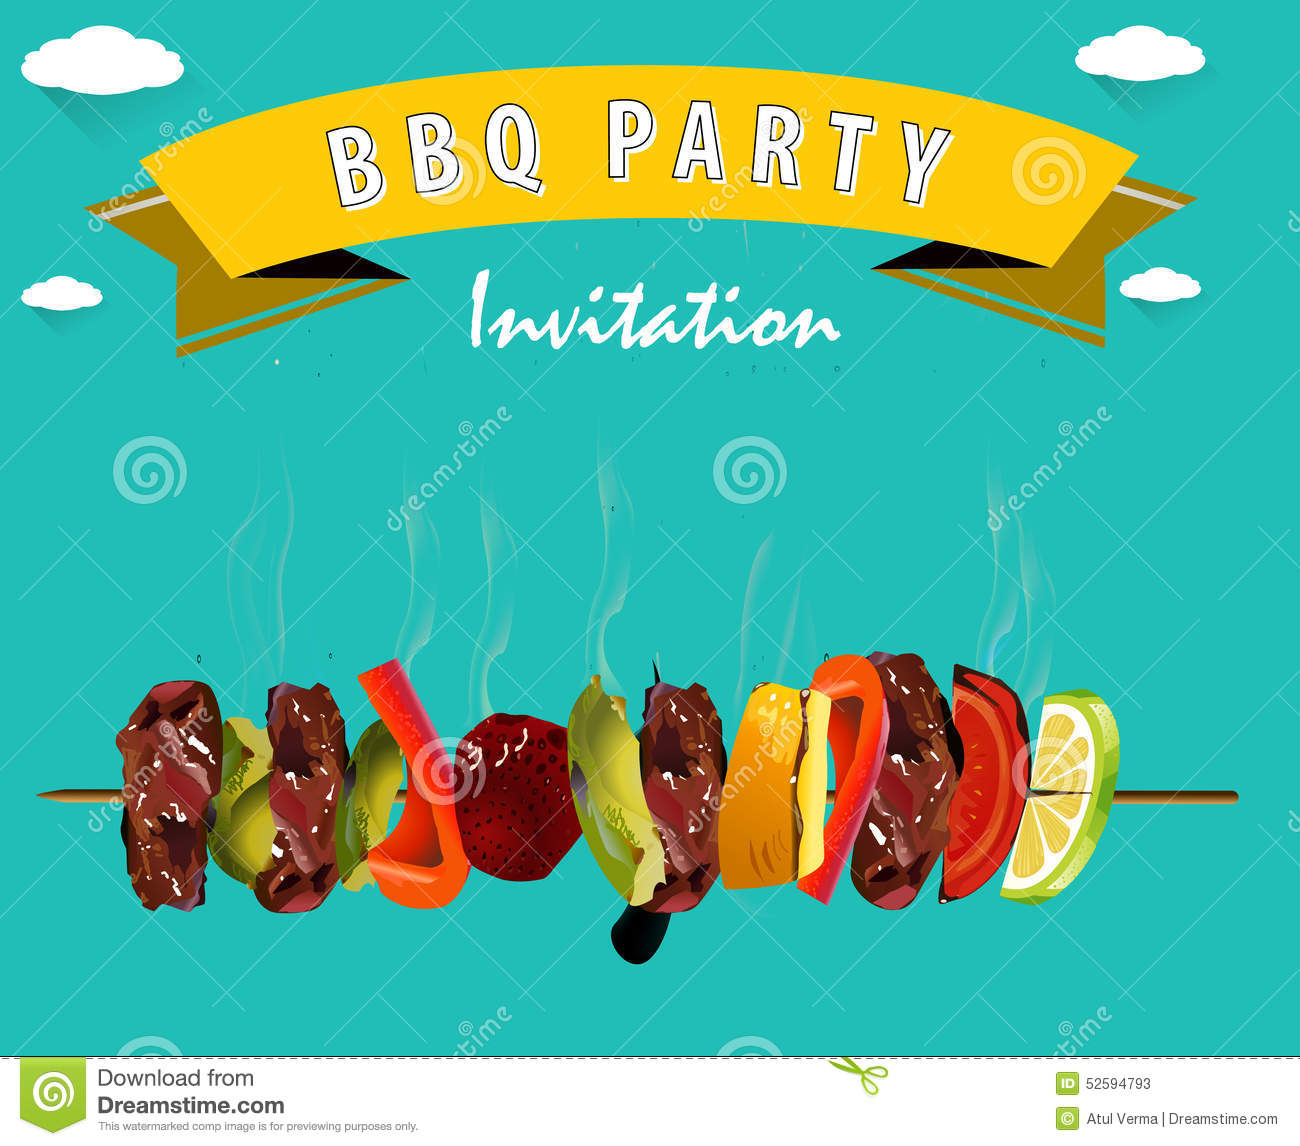 Invitation For Bbq as adorable invitations sample